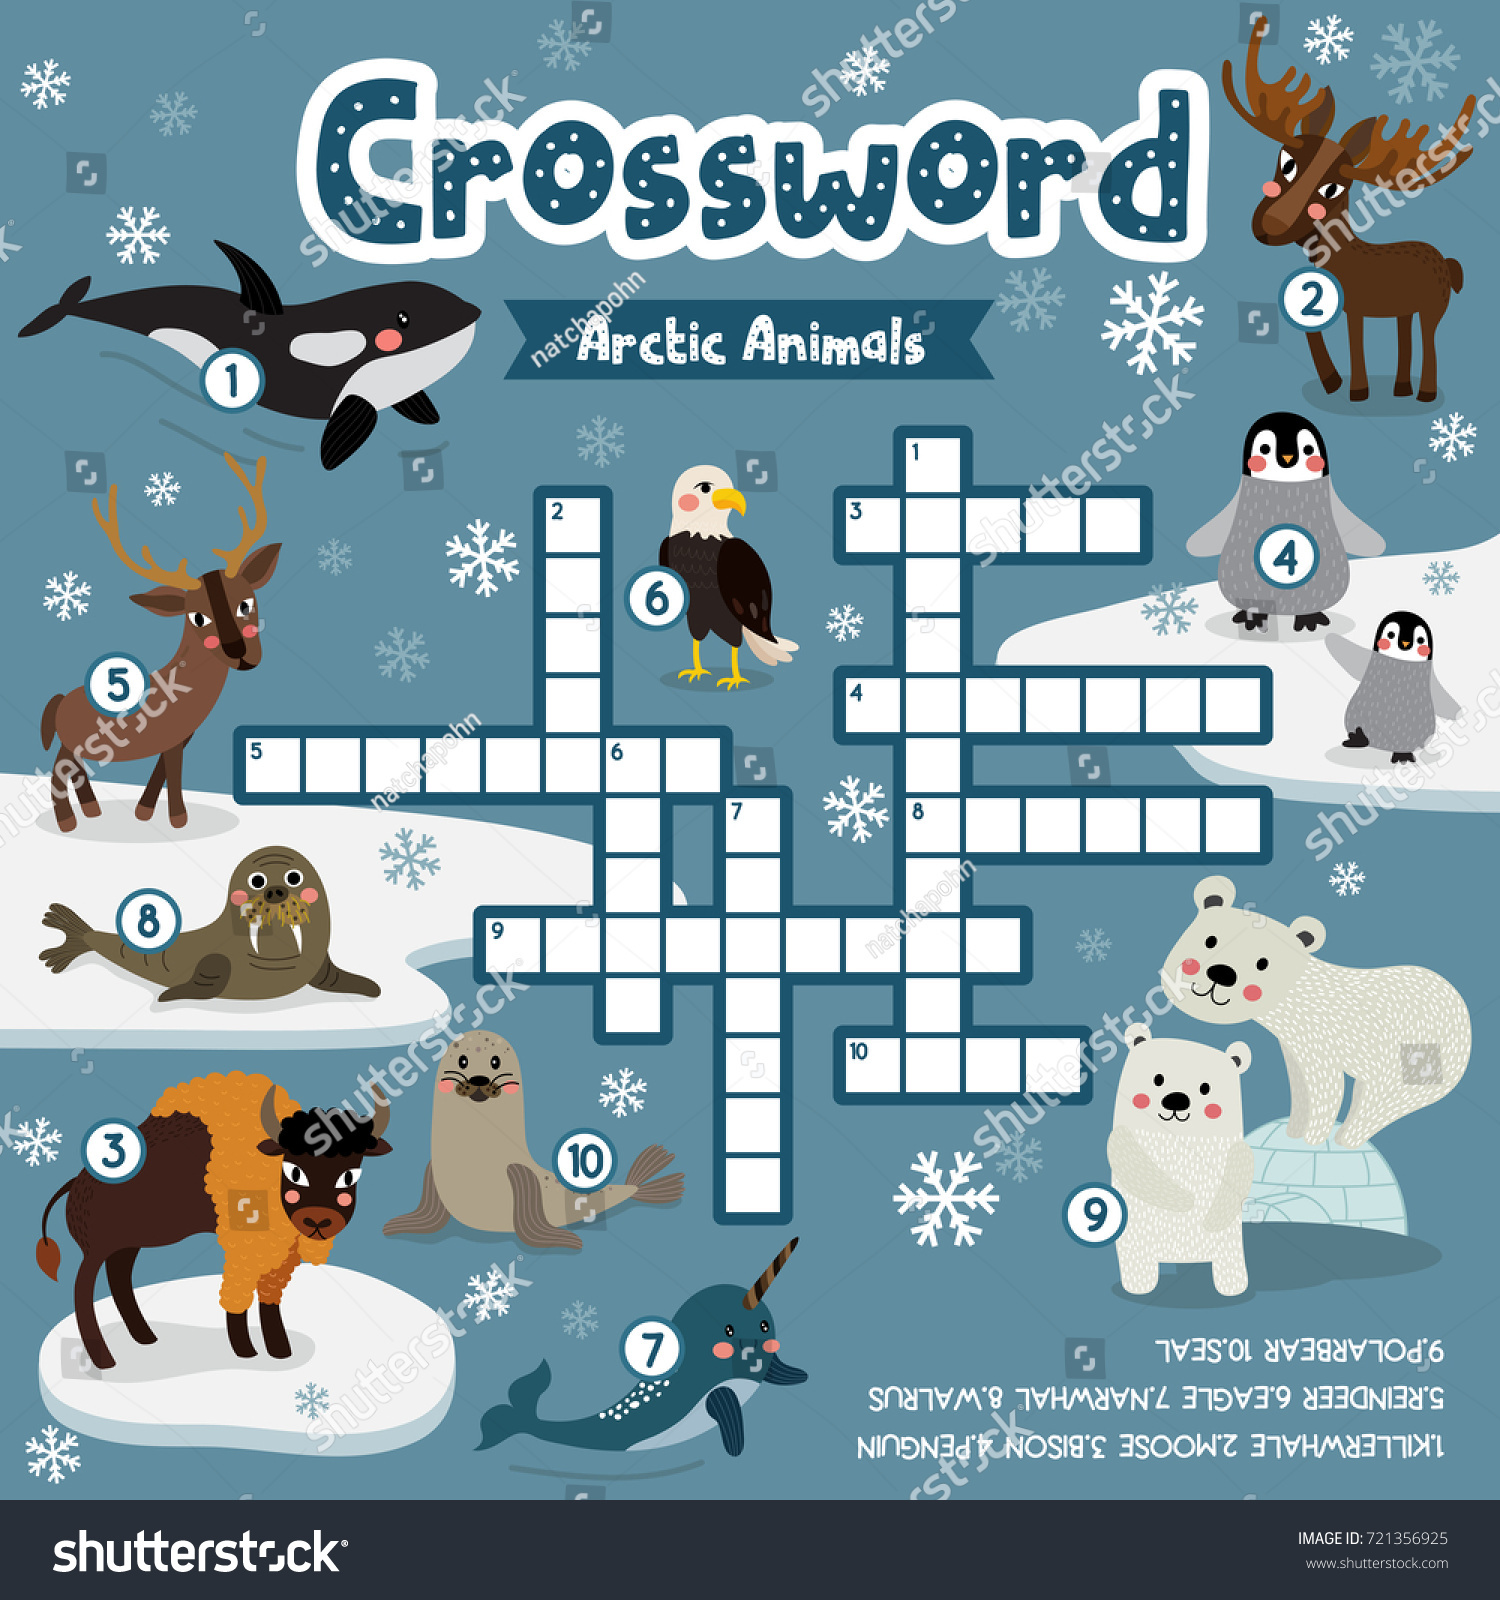 Game with shapes of different colors crossword - Crosswords Puzzle Game Of Arctic Animals For Preschool Kids Activity Worksheet Colorful Printable Version Vector